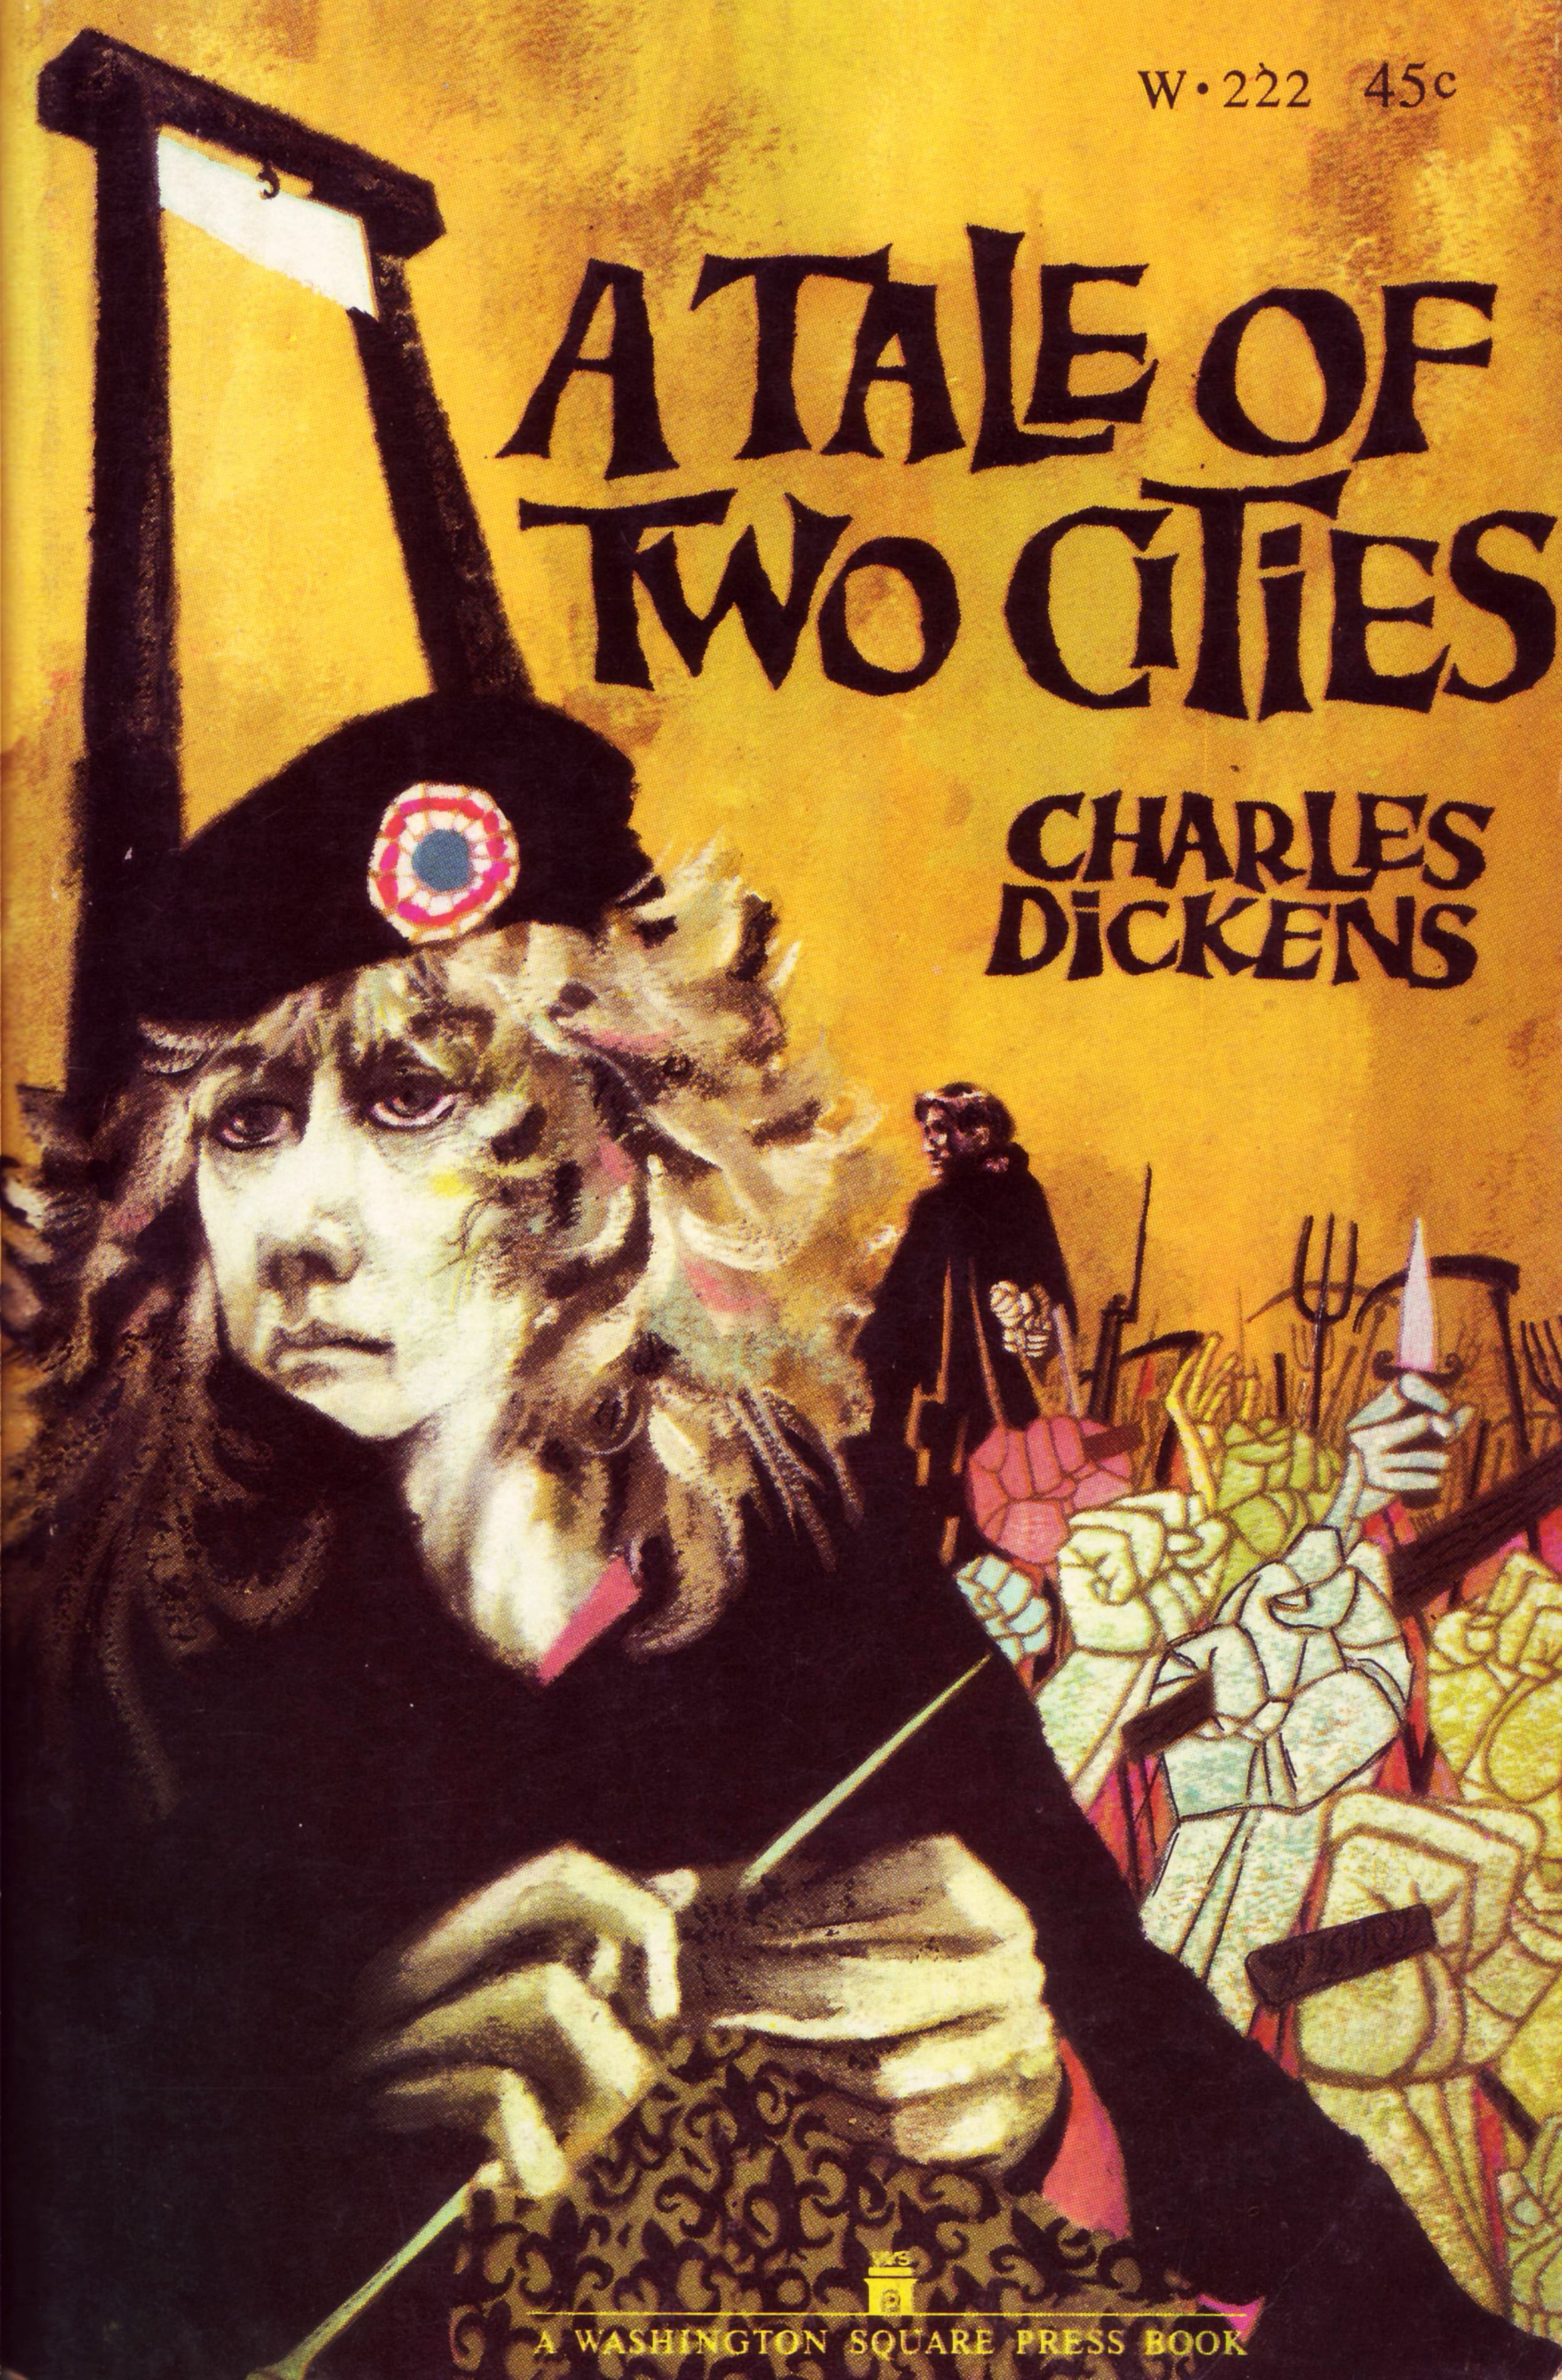 Leo Amp Diane Dillon A Tale Of Two Cities By Charles Dickens